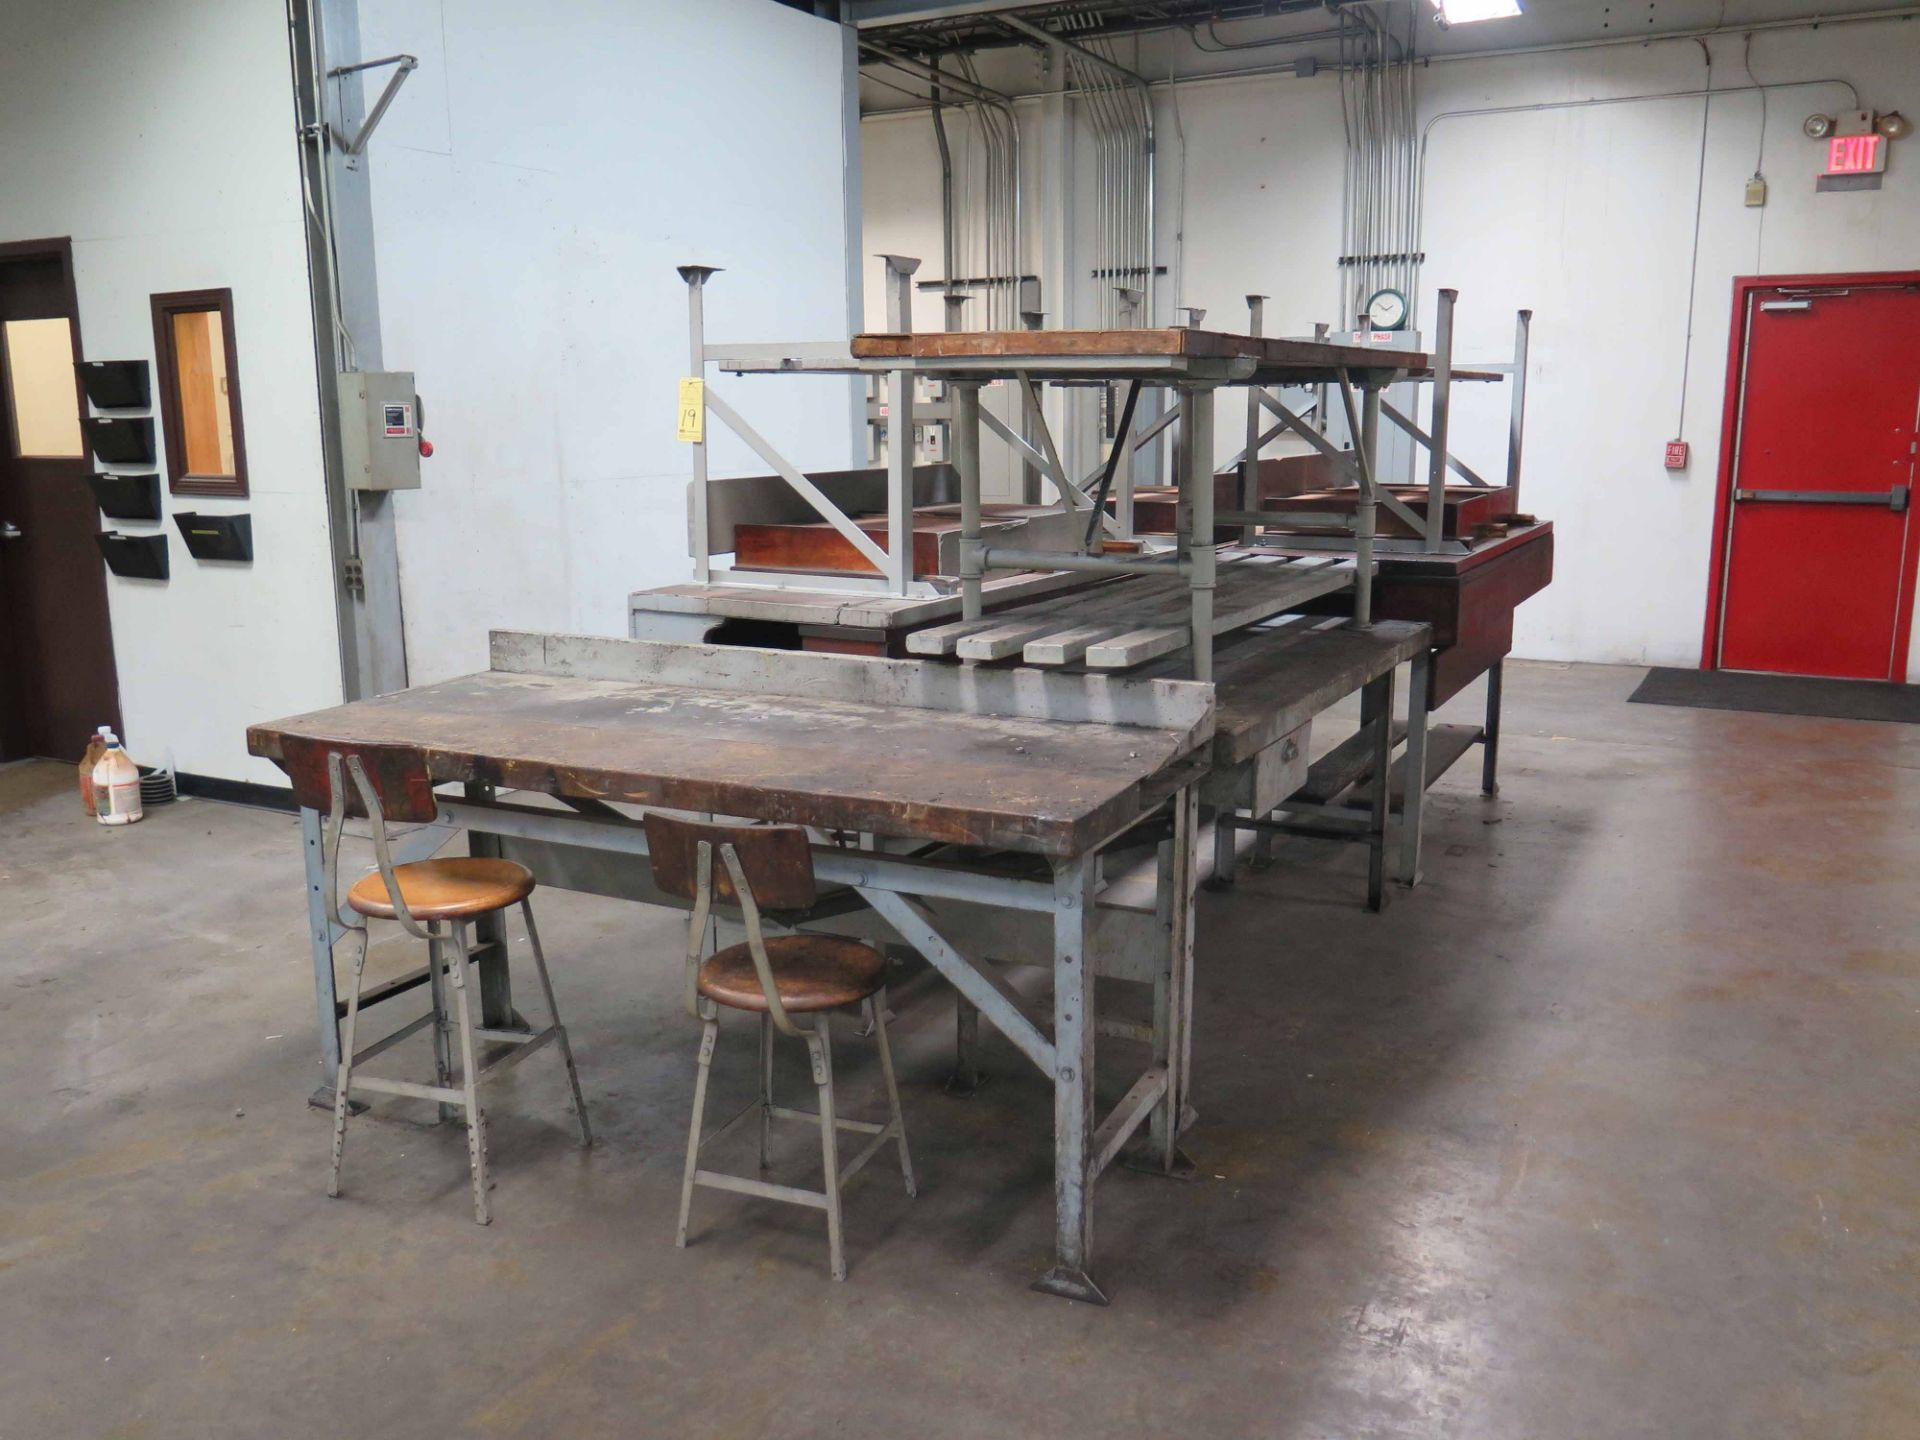 """Lot 19 - LOT OF SHOP TABLES (9), metal legs, wooden tops, 8' x 30"""" tops, some have drawers"""